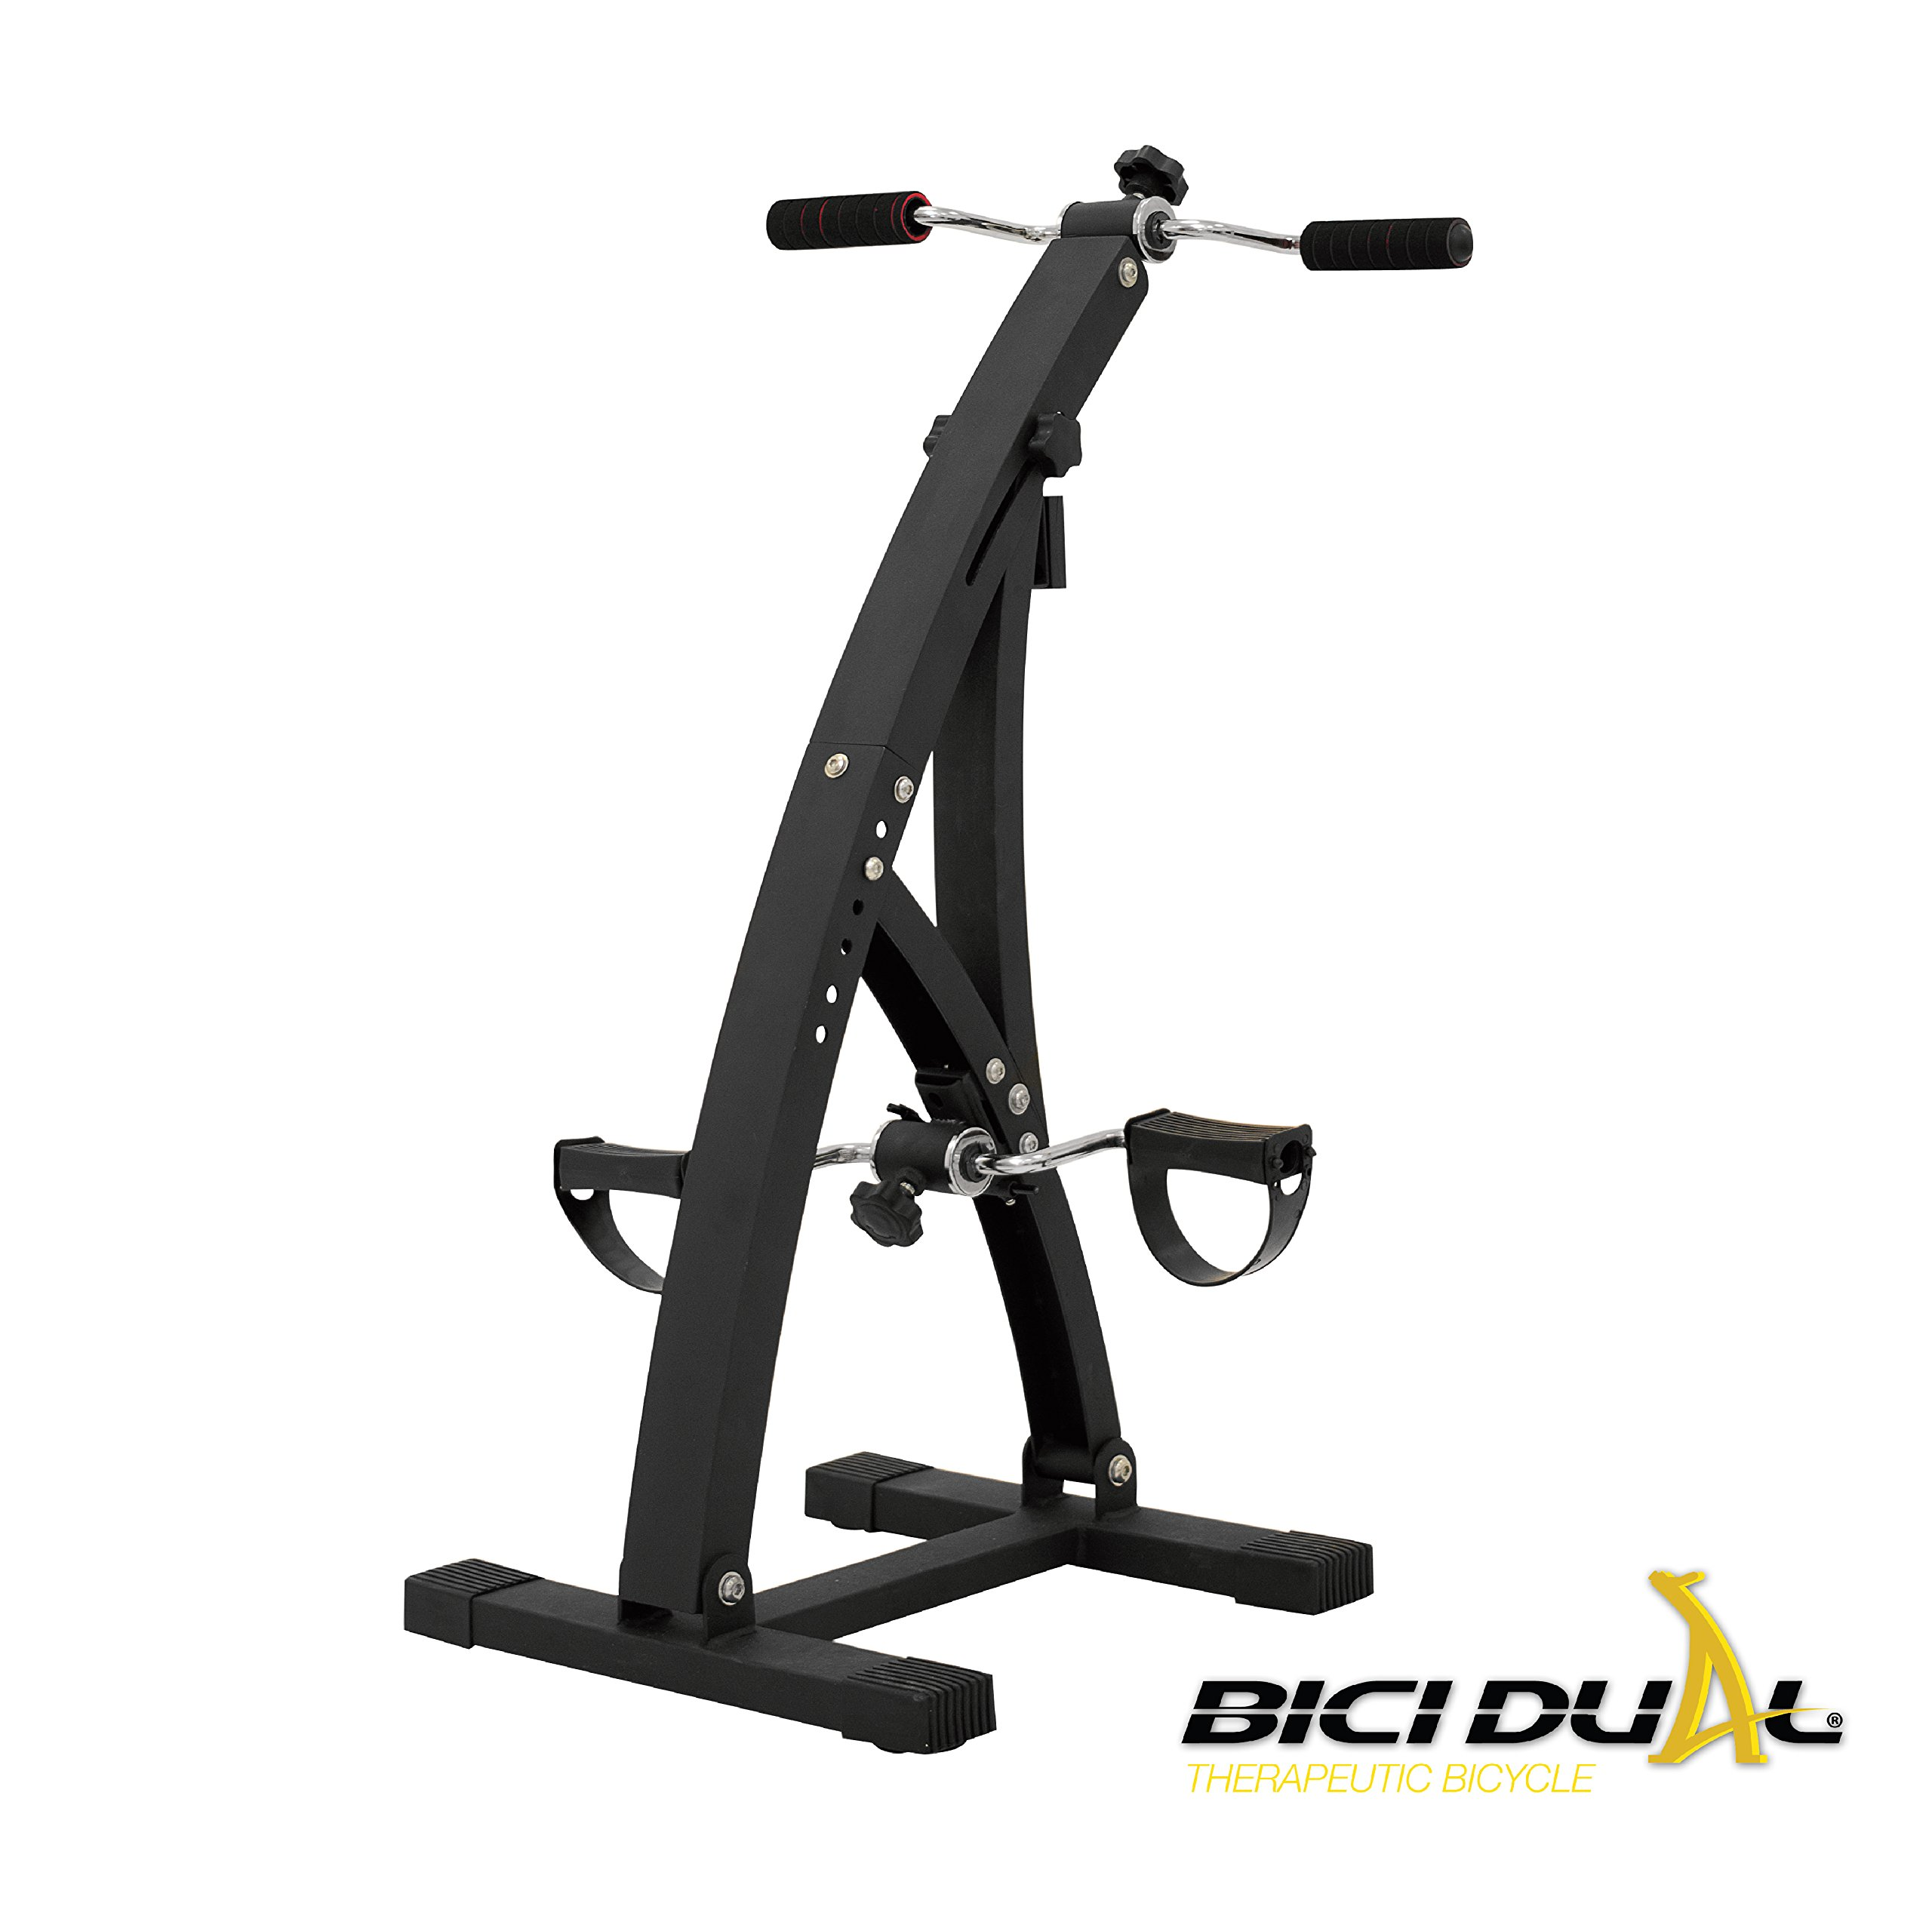 Bicidual - Low Impact Total Body Exerciser & Physiotherapy Machine. Workout your Arms and Legs and Enhance your Blood Circulation with this Indoor Bike while Sitting in the Comfort of your Home by Bicidual